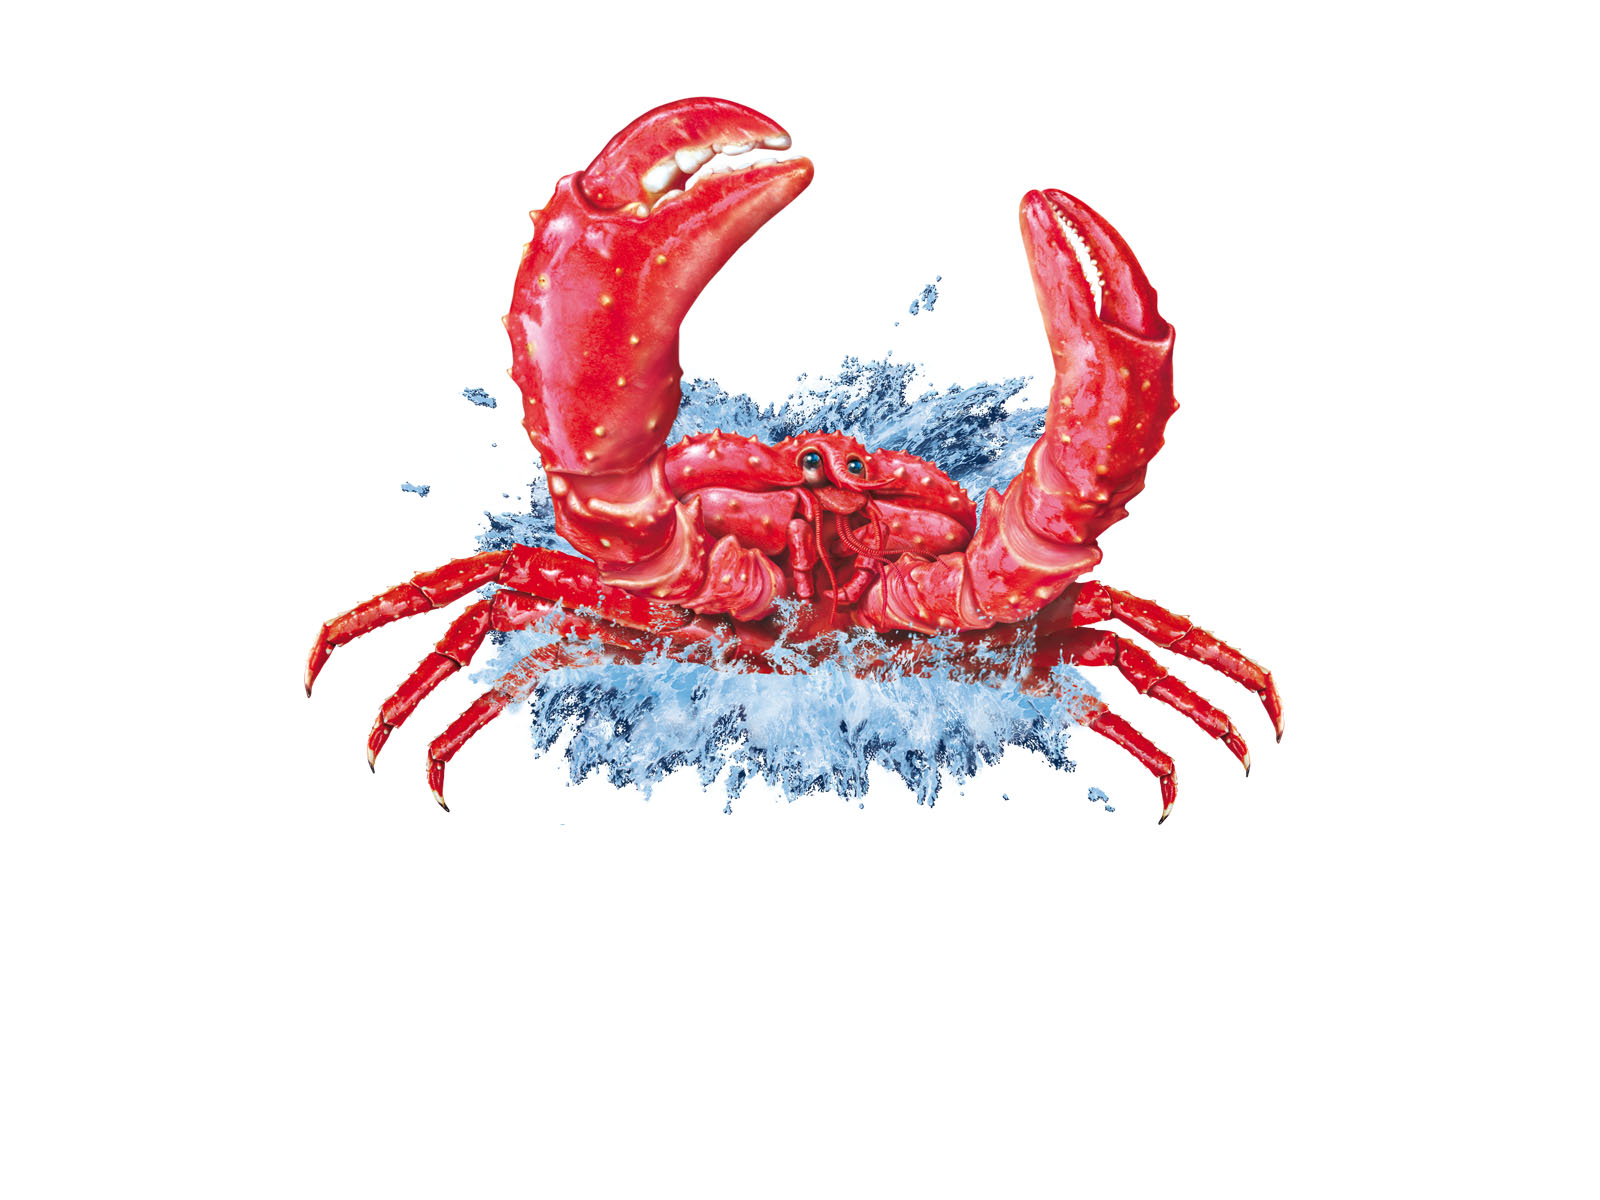 françois-poulain-illustration-animaux-crabe.jpg